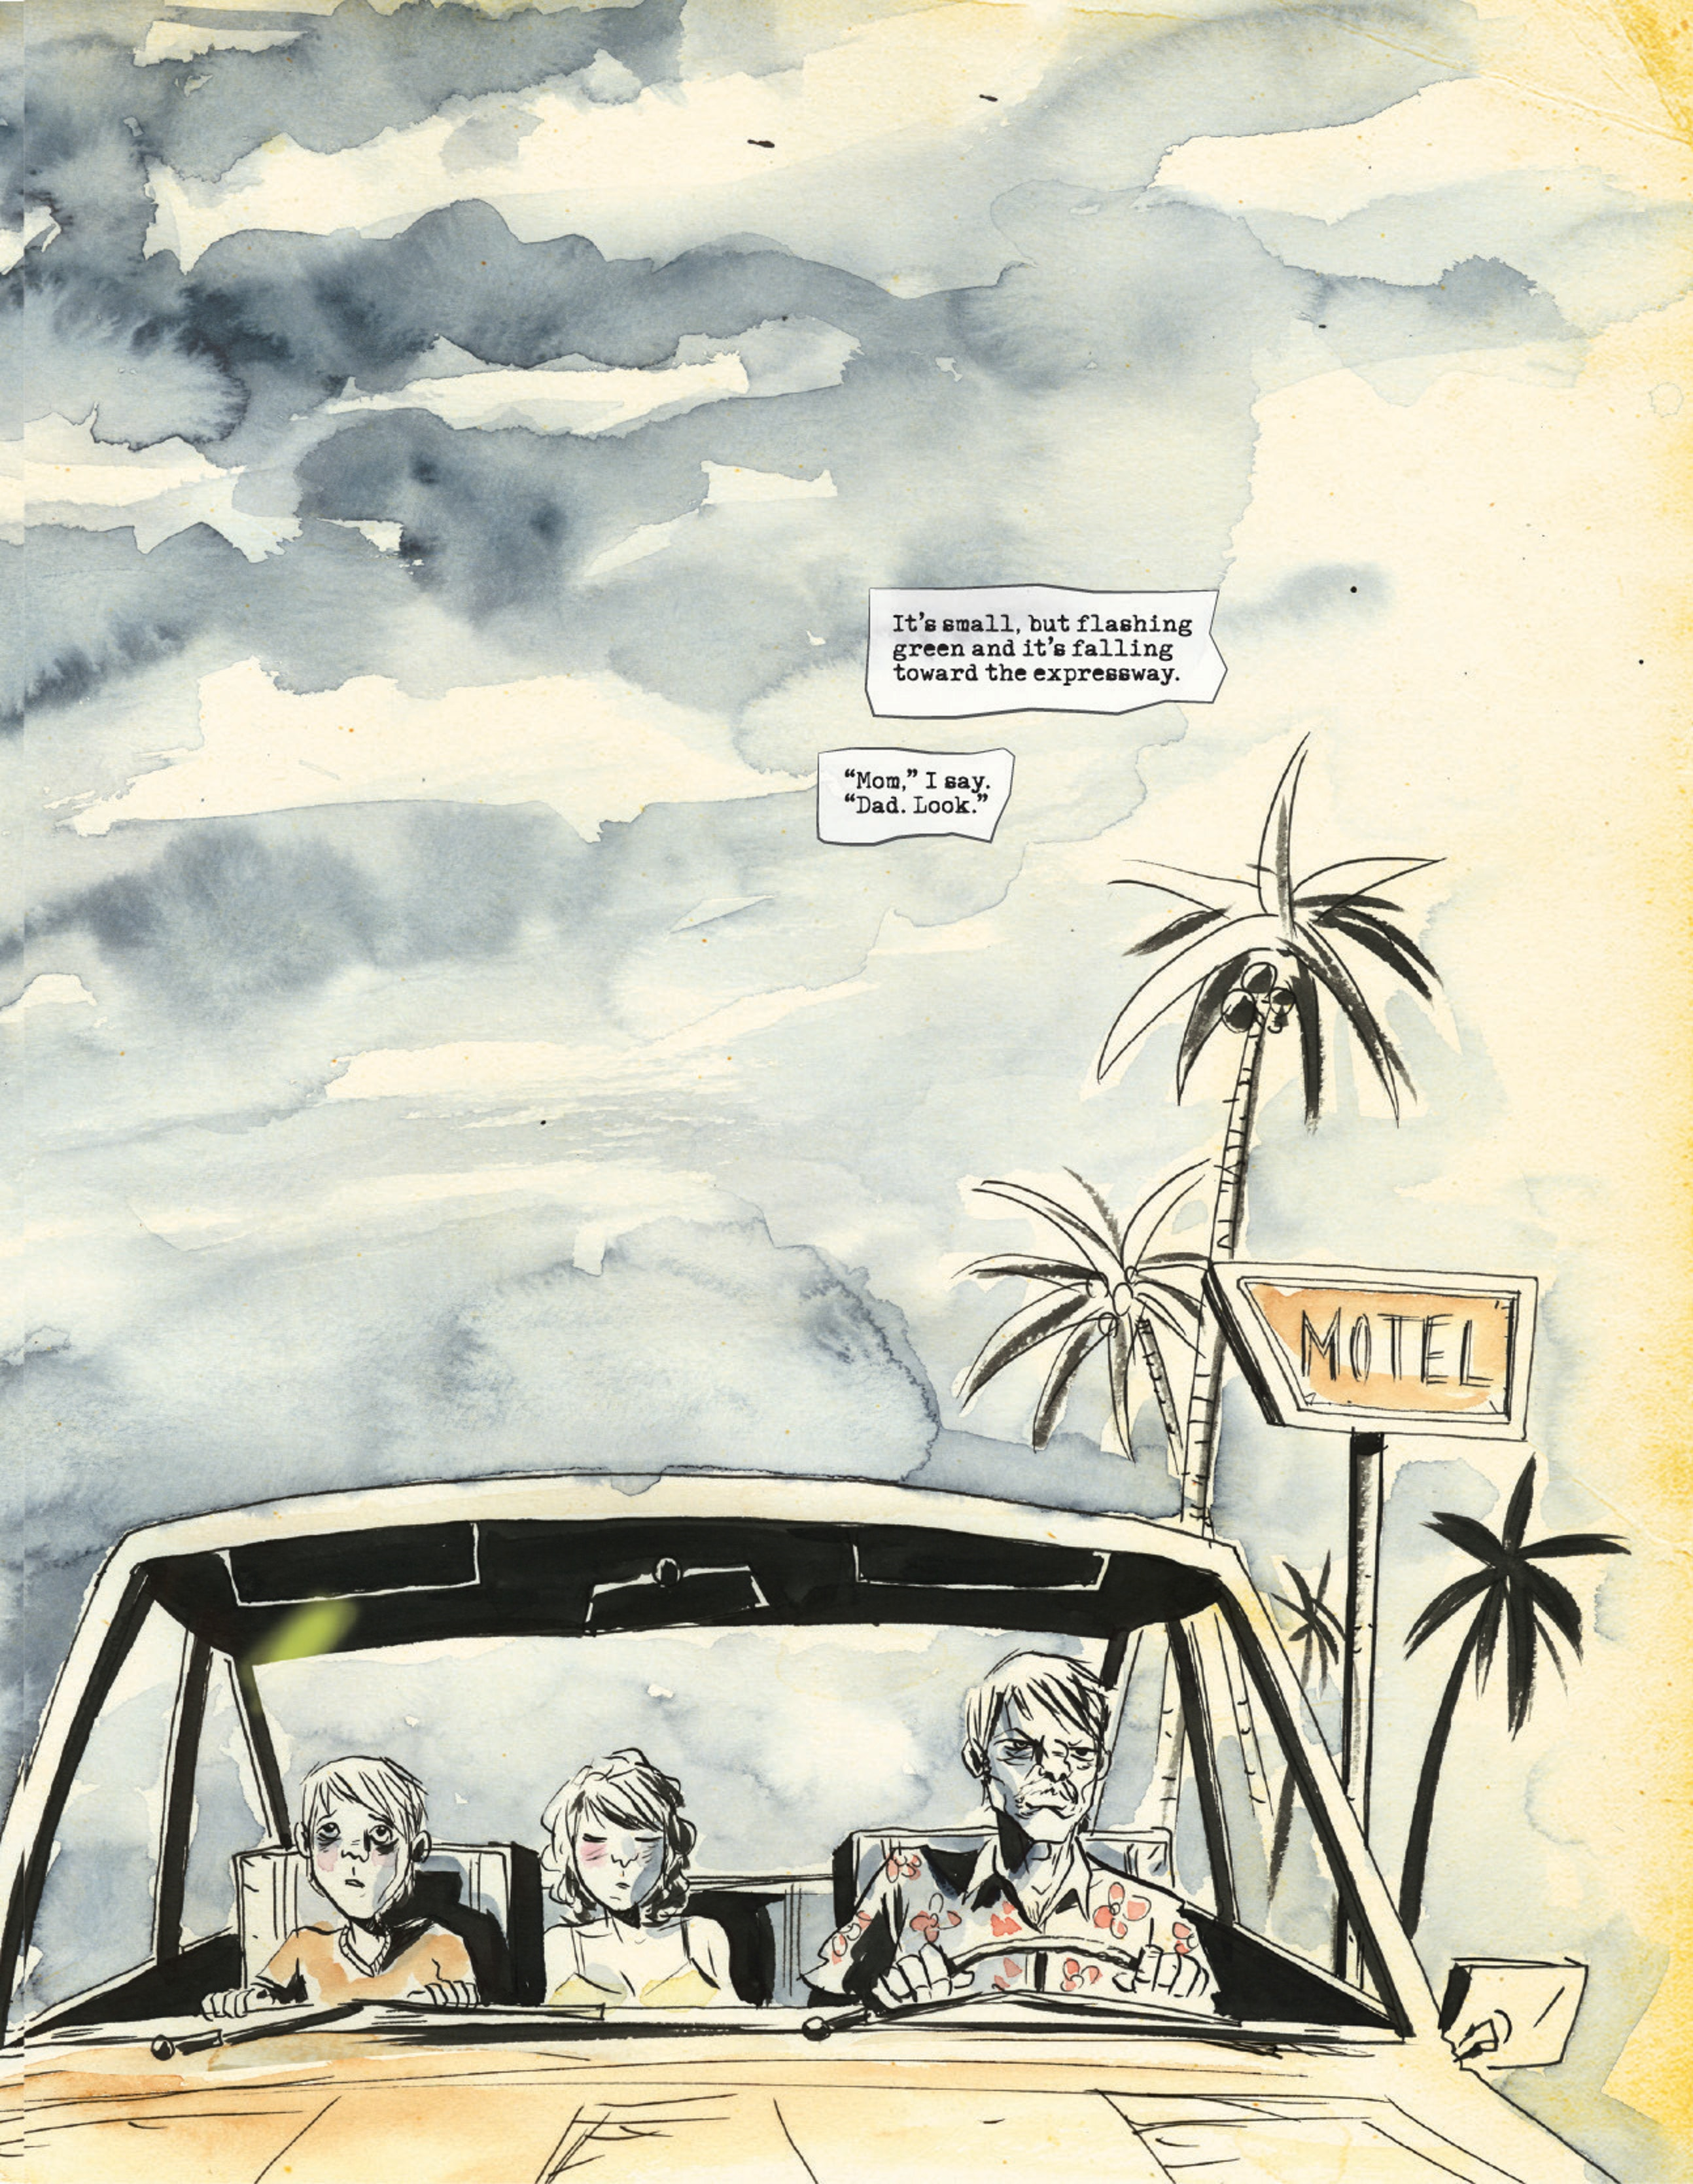 Scene from A.D. After Death from Image Comics